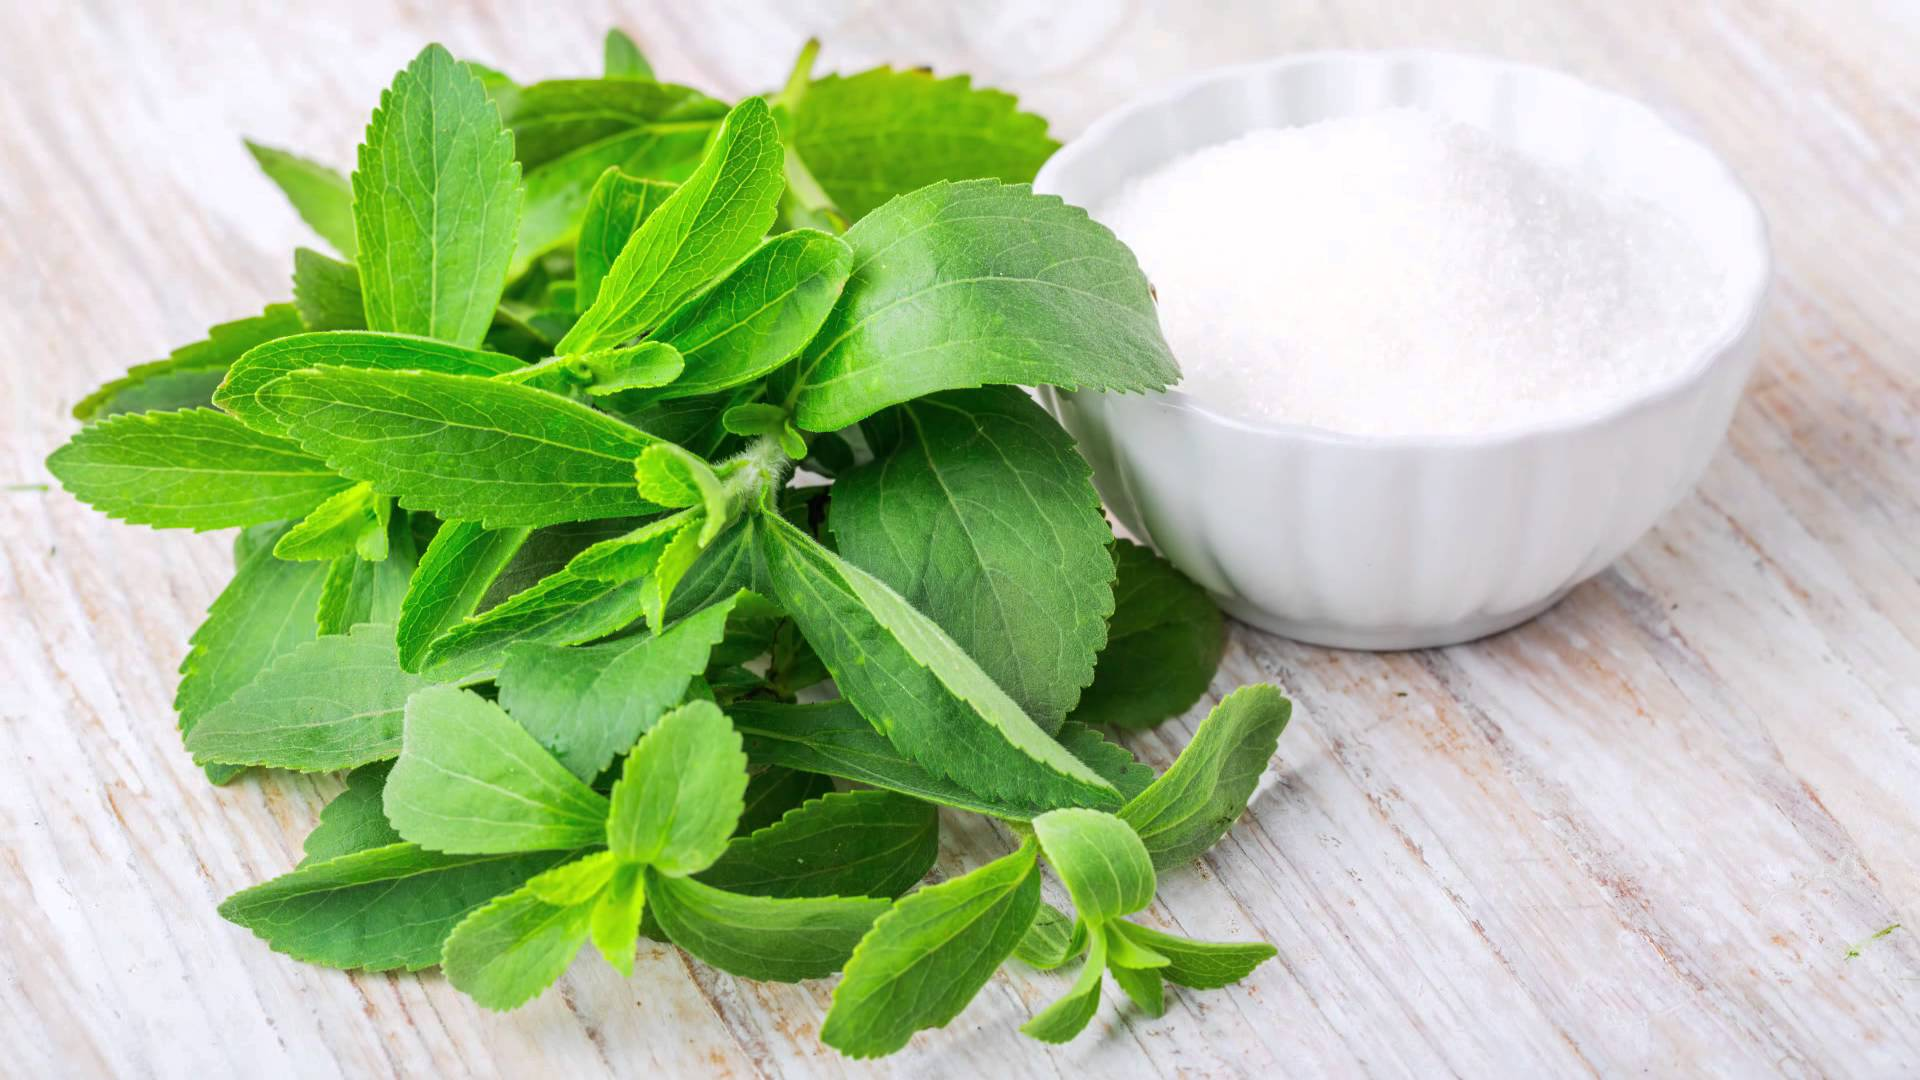 New Study says Stevia May Help Control Blood Sugar Levels